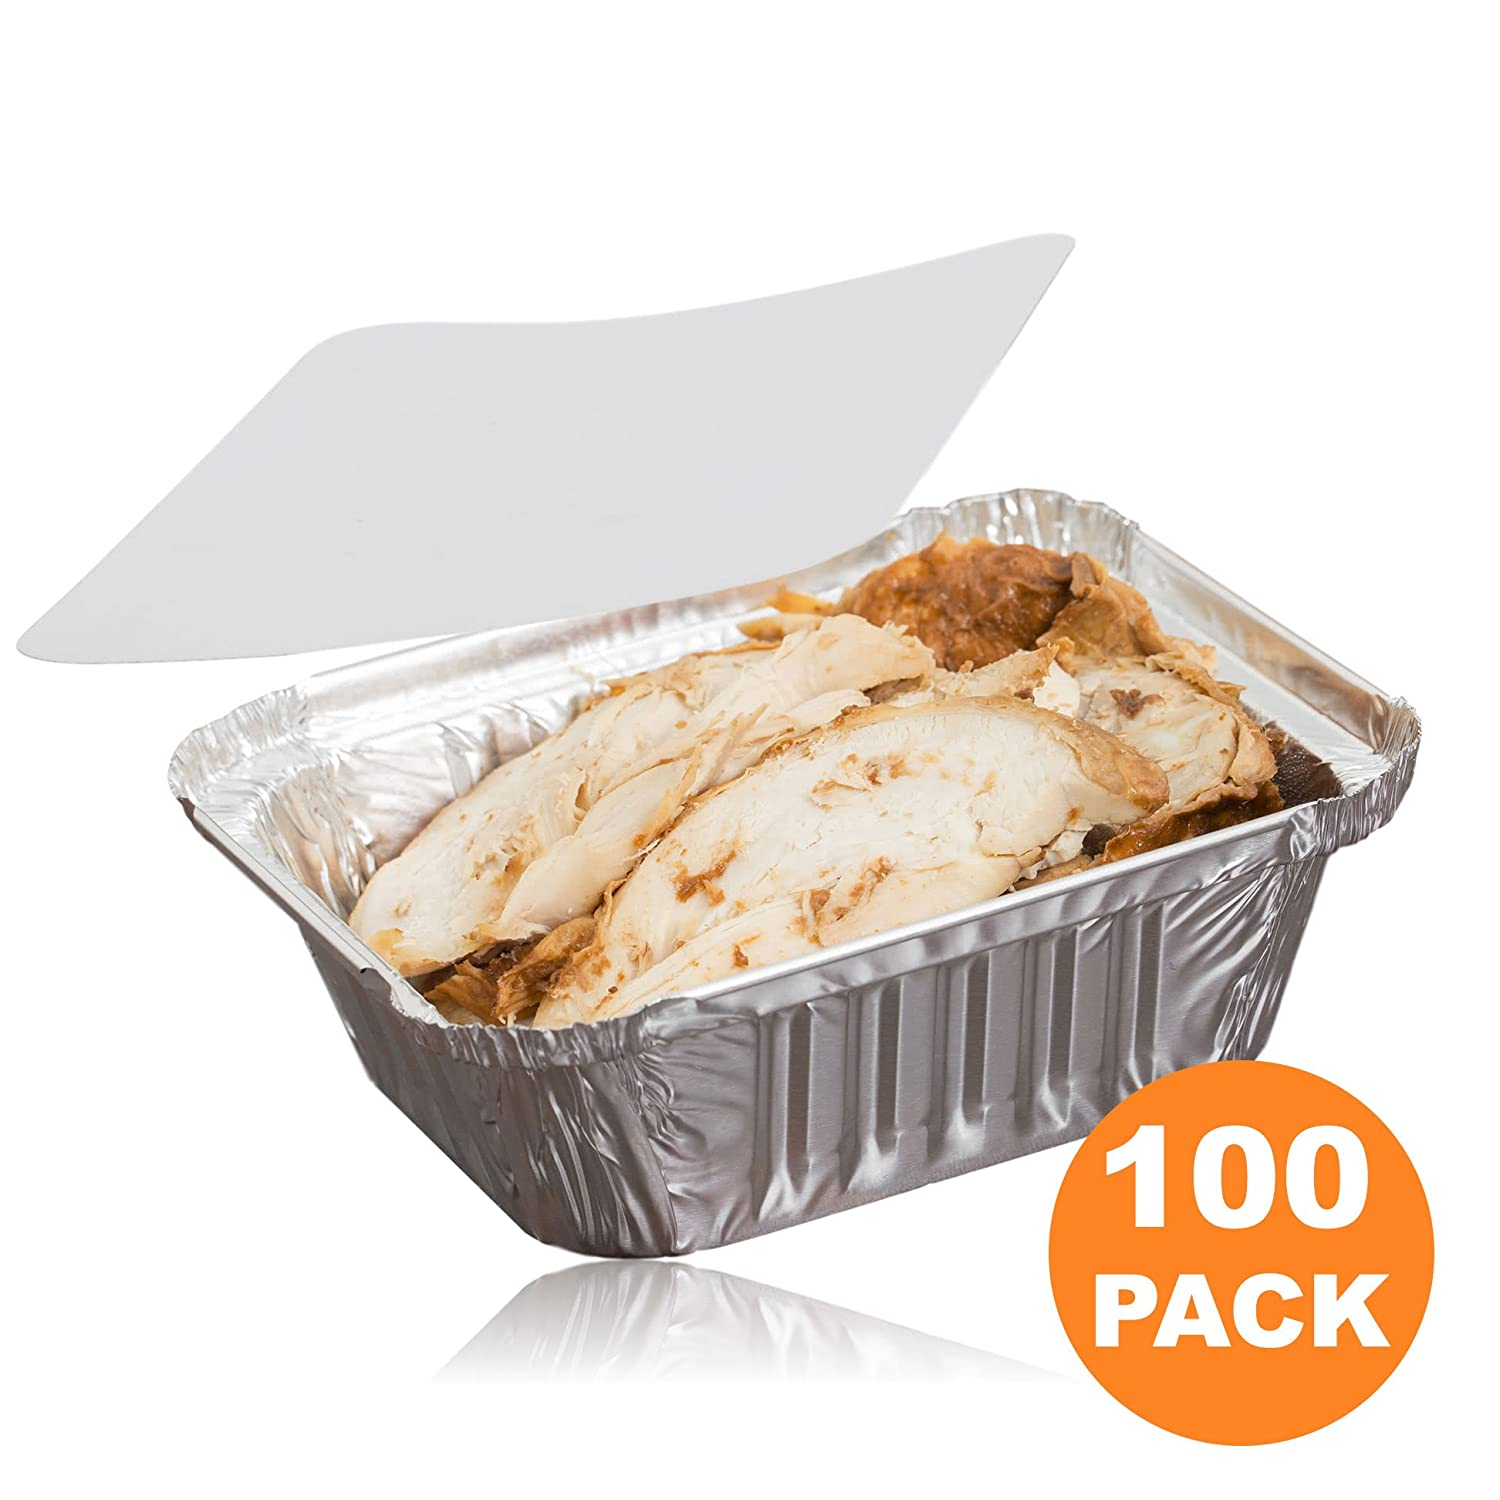 "[100 Pack] Rectangular 1 lb 16 oz Pint 6 x 5 x 2"" Disposable Aluminum Foil Pan Take Out Food Containers with Flat Board Lids, Hot Cold Freezer Oven Safe"